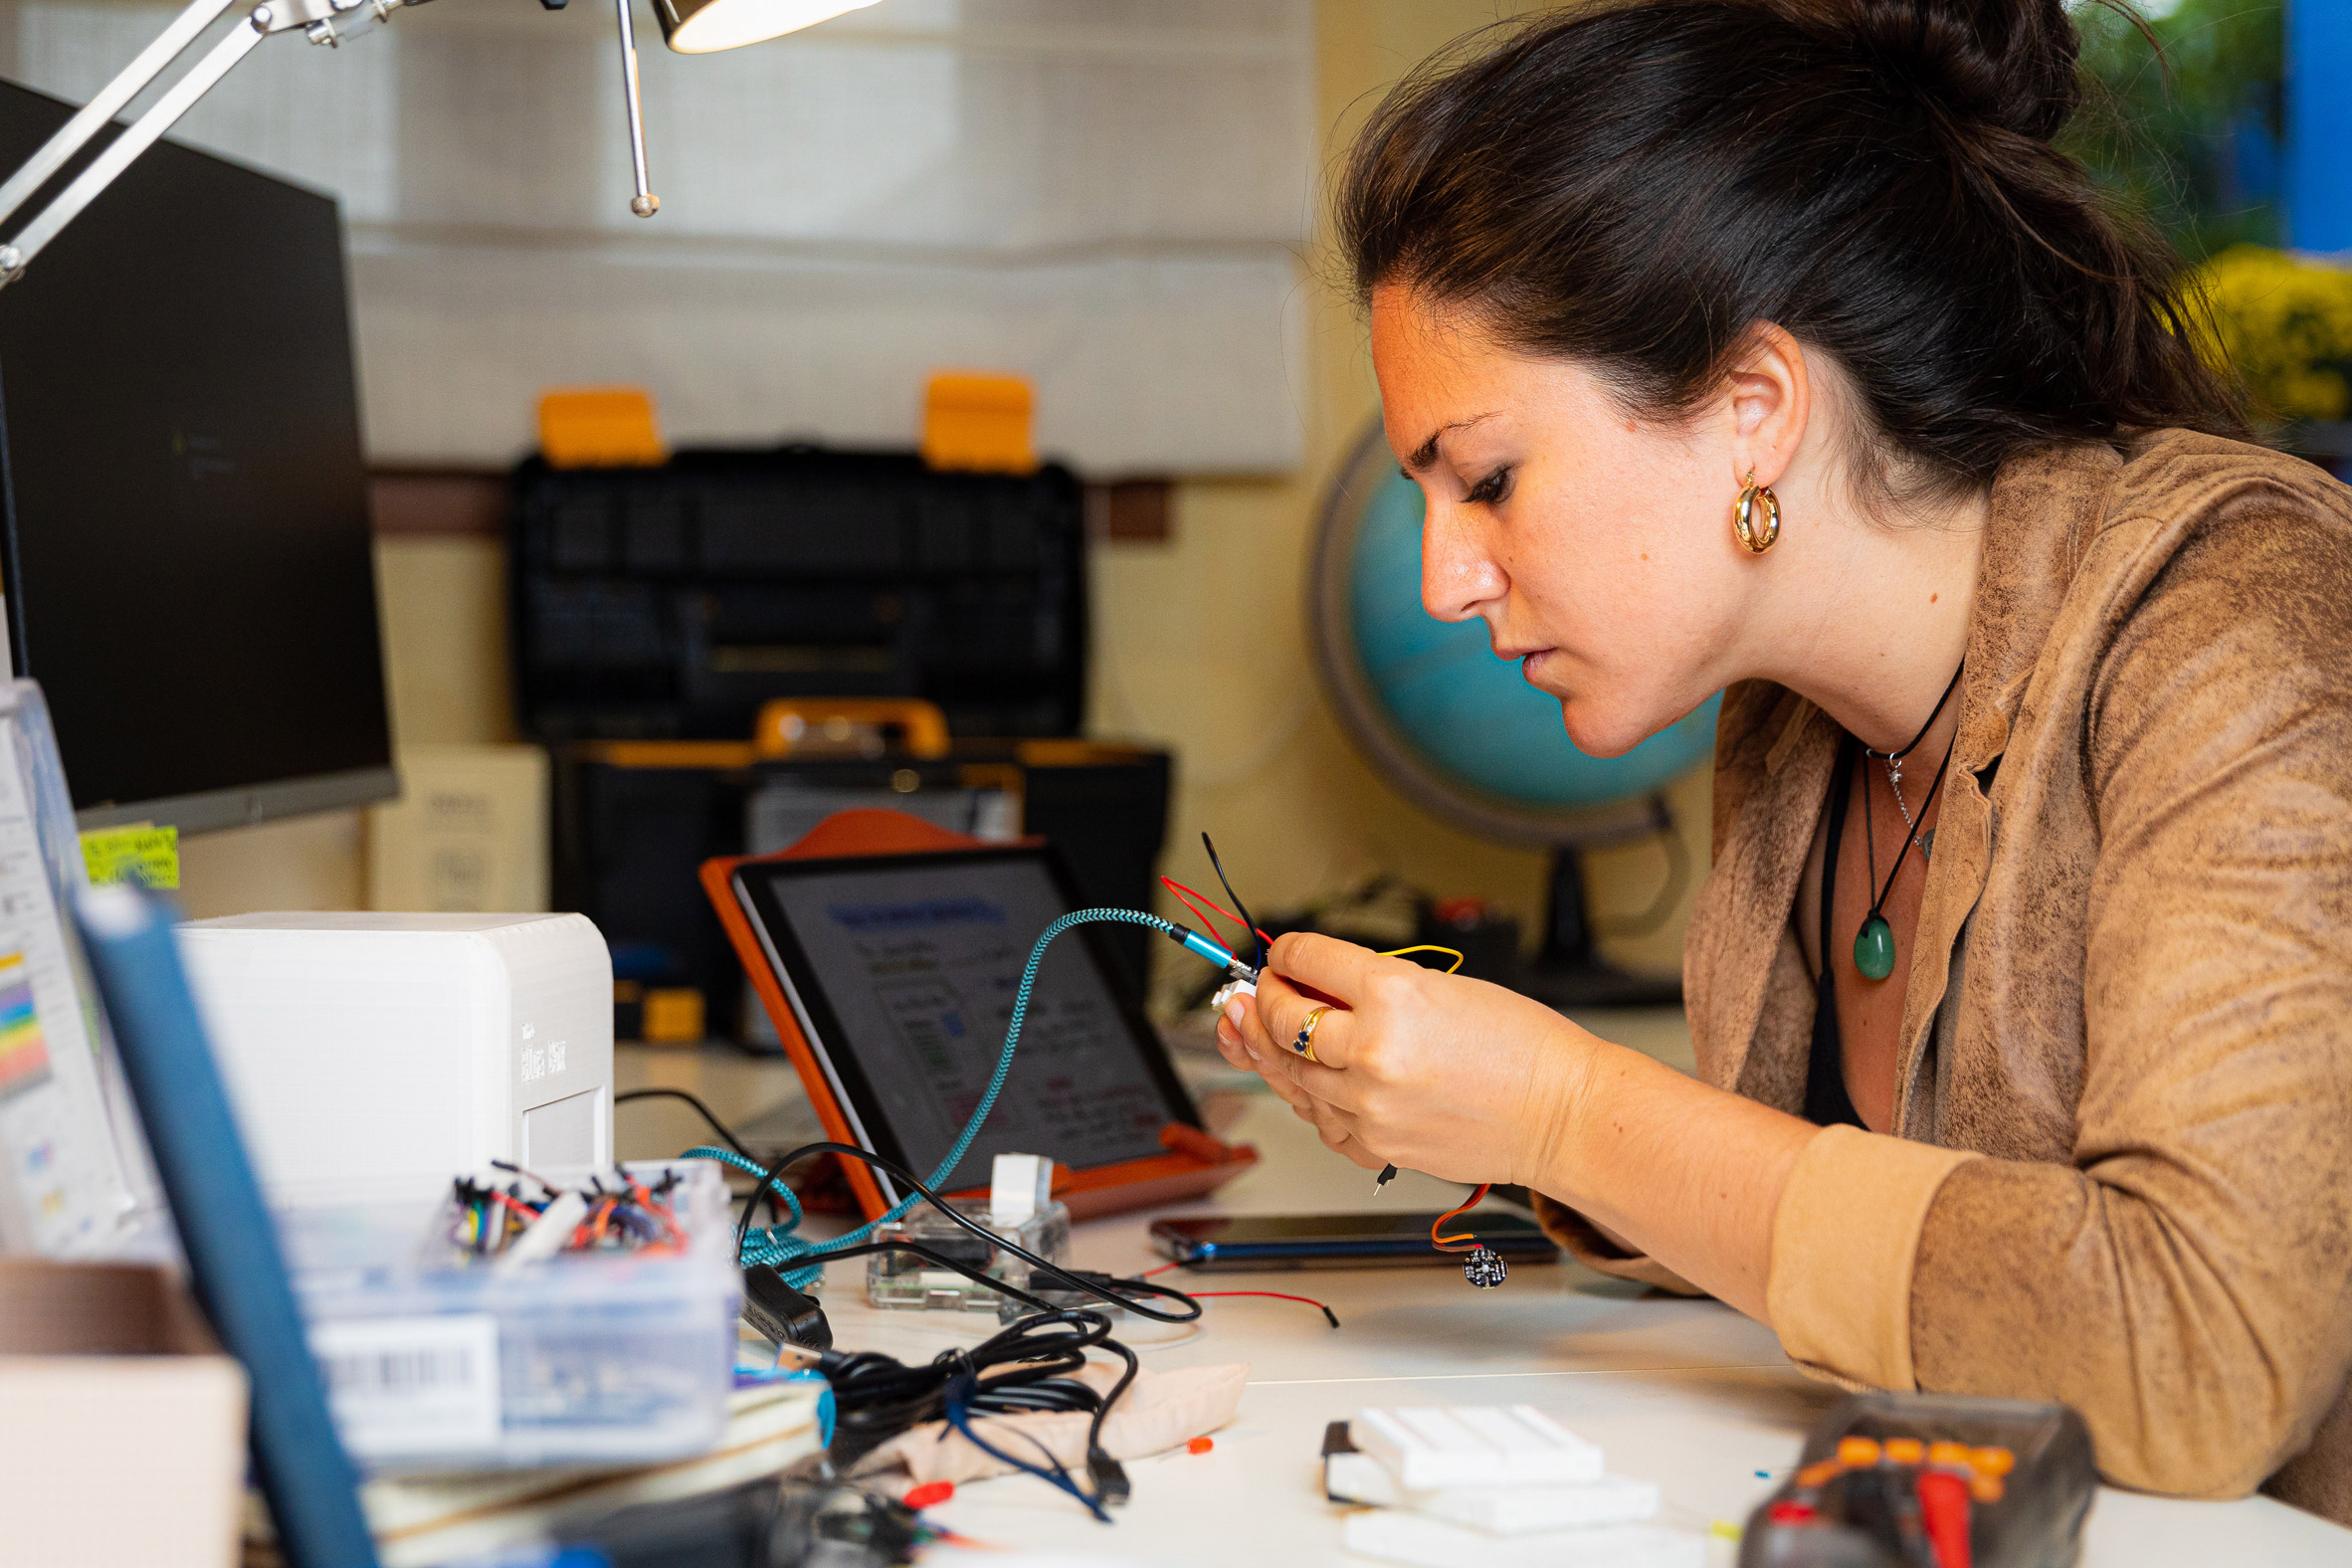 Judit Giró Benet developing The Blue Box, an at-home breast cancer testing kit